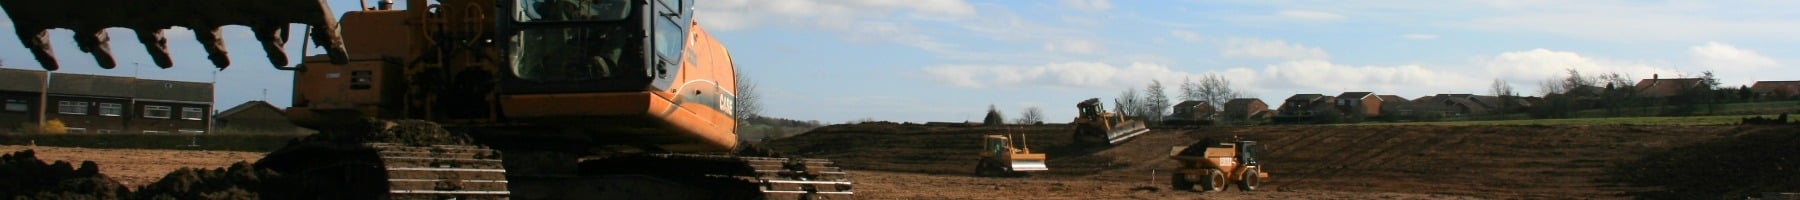 As A Leading Bulk Earthworks Contractor, Our In House Engineers And  Specialists Are Able To Provide Surveys And Volumetric Analysis, In  Addition To ...